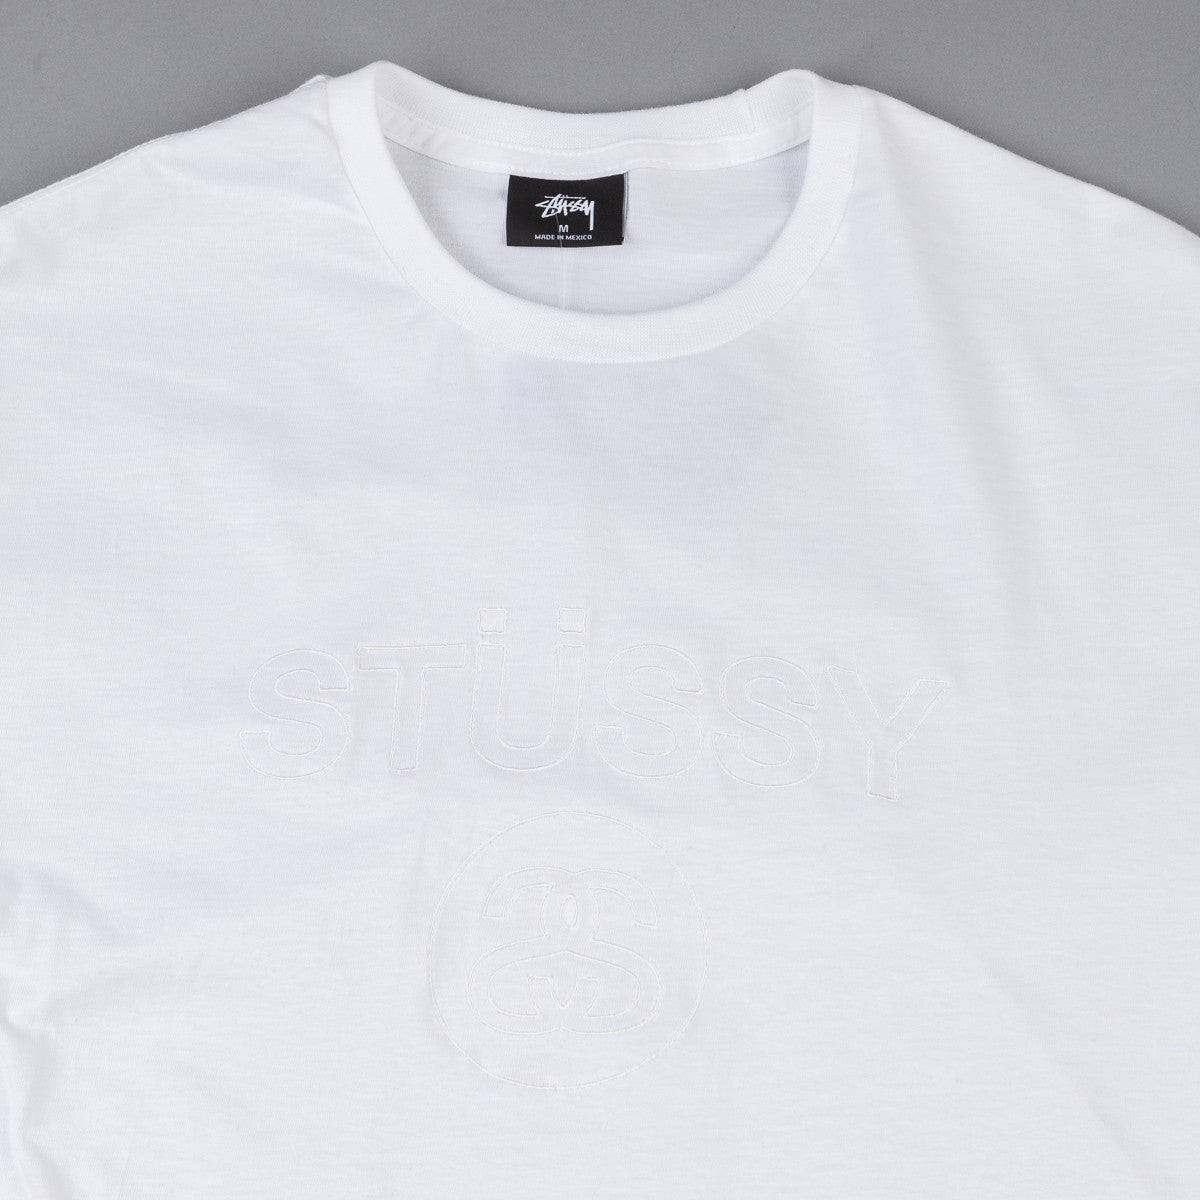 Stussy Link Embroidered T-Shirt - White